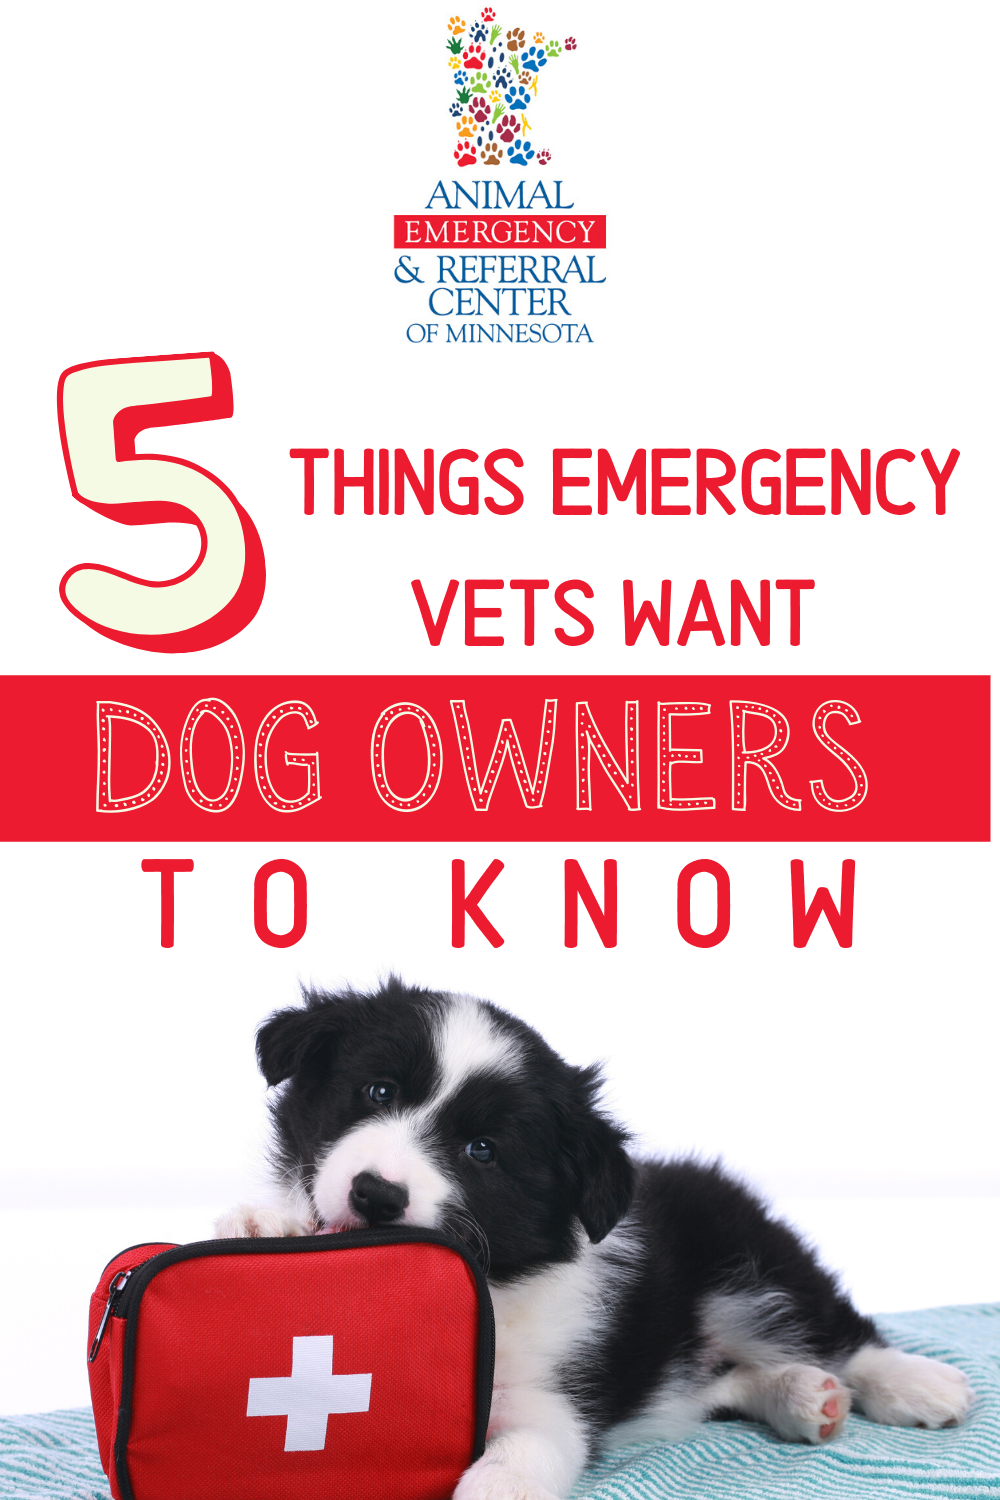 5 Things Emergency Vets Want Dog Owners to Know in 2020